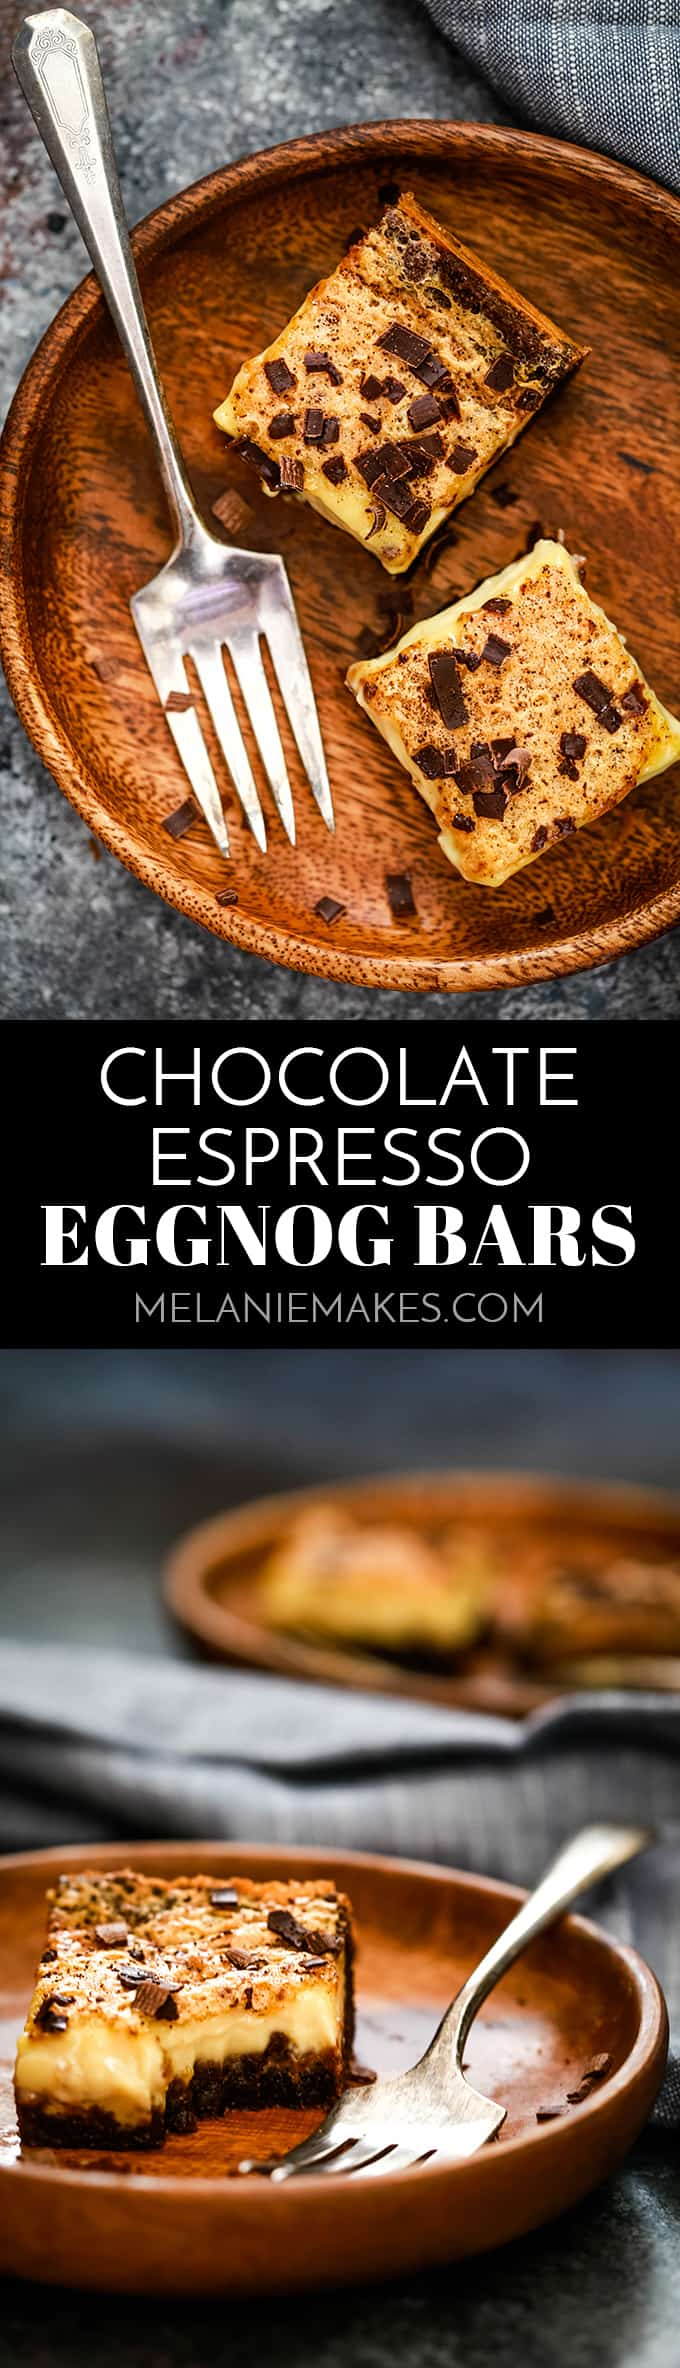 These Chocolate Espresso Eggnog Bars are perfect for any holiday get together! A chocolate espresso crust is the base for a eggnog filling spiked with Kahlua and nutmeg for a twist on traditional eggnog. After a shower of espresso powder and chocolate shavings on top, these decadent treats are ready to devour.